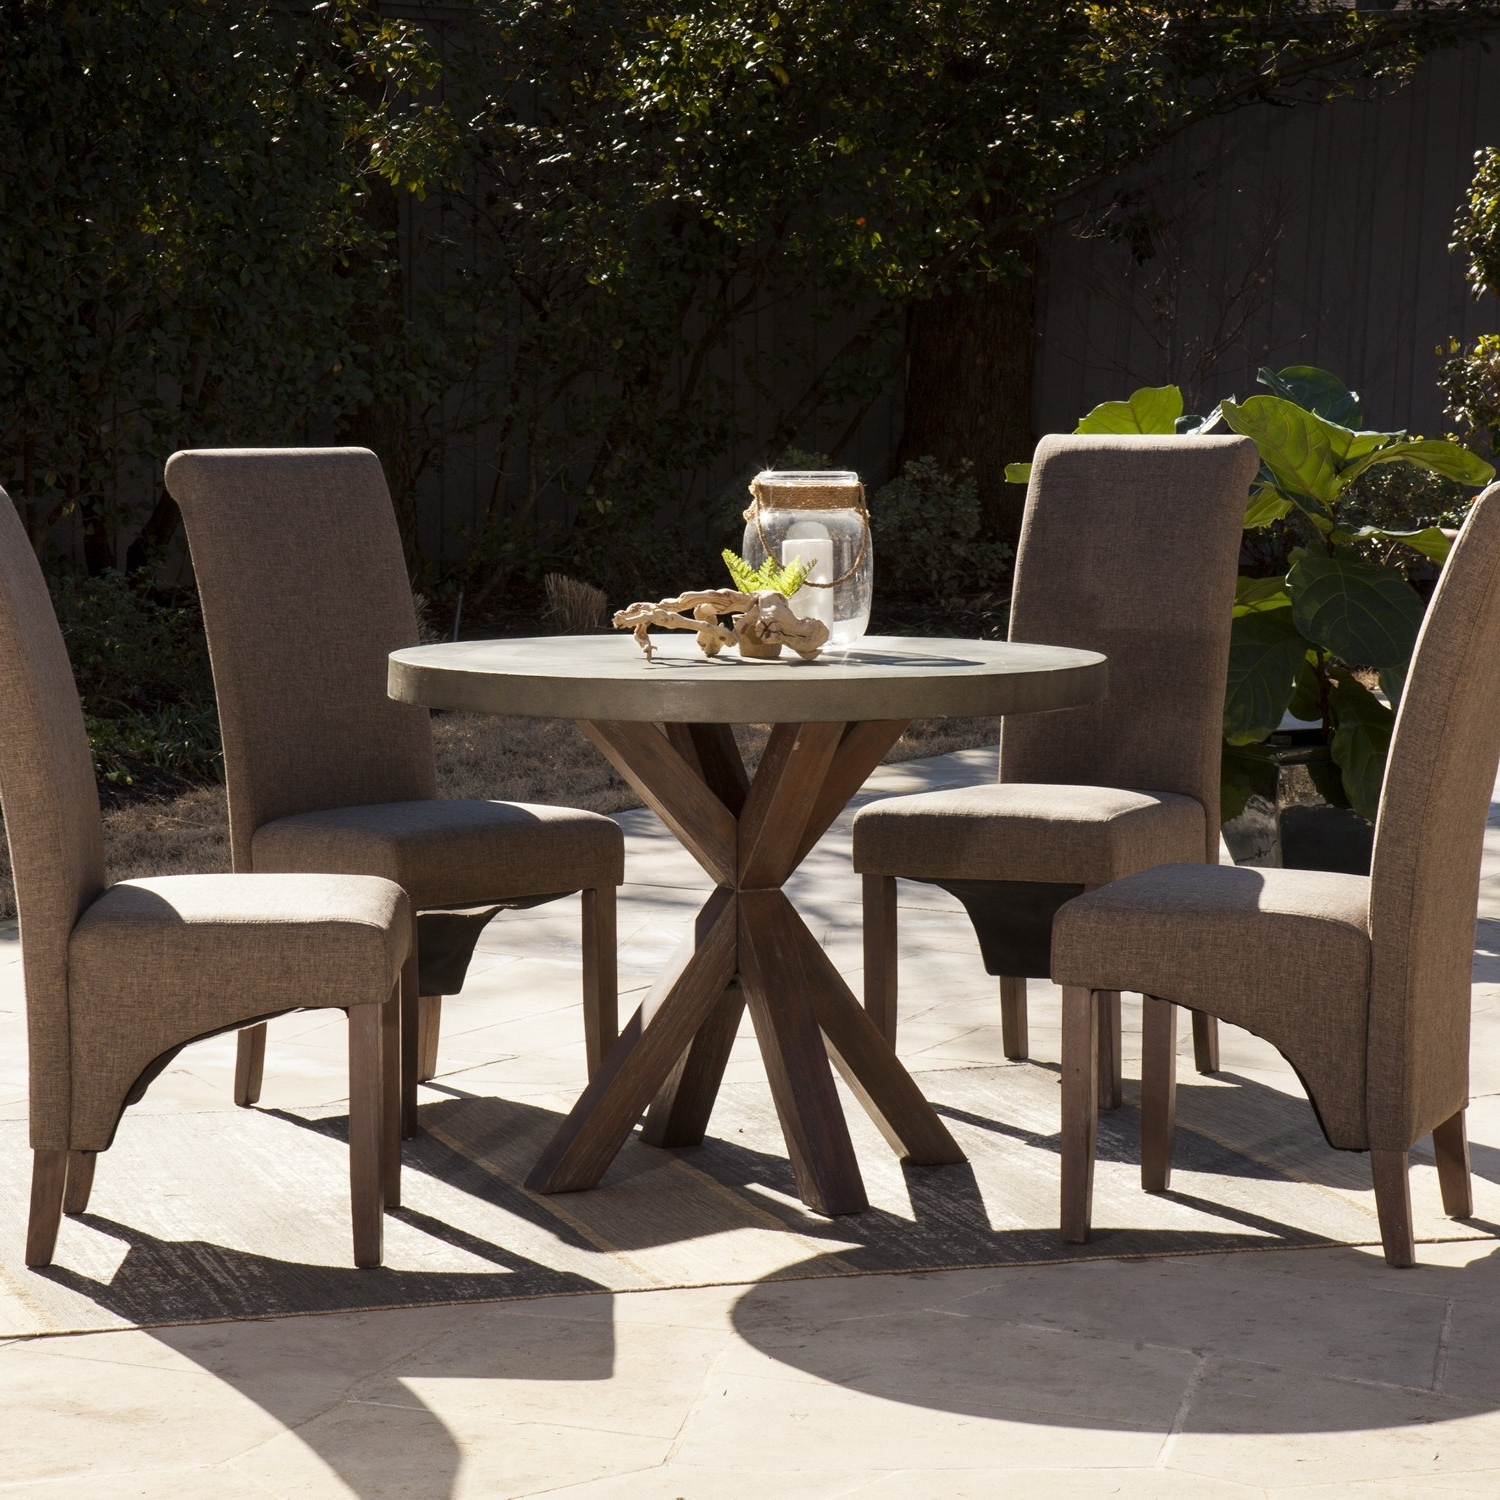 Ebay Dining Chairs throughout Best and Newest Catchy Ebay Dining Room Tables And 20 New Ideas For Dining Chairs